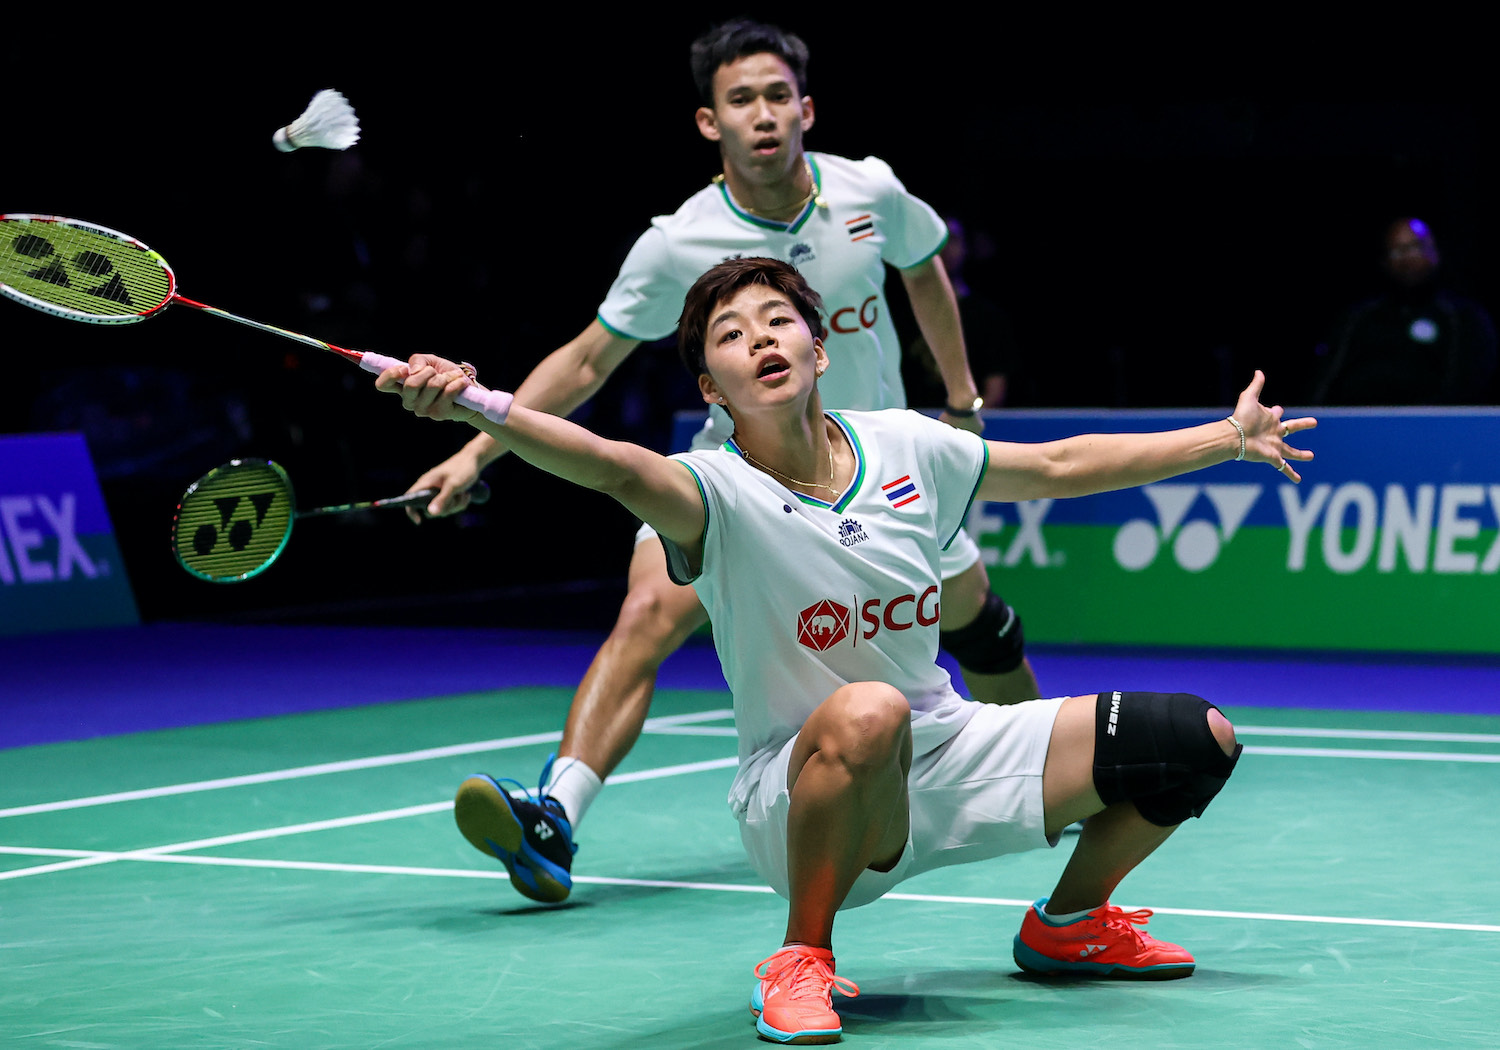 Thai mixed doubles stars Sapsiree Taerattanachai and Dechapol Puavaranukroh compete in the final of the All England Open in March, one of the last major badminton events staged before activity was shut down because of the coronavirus.